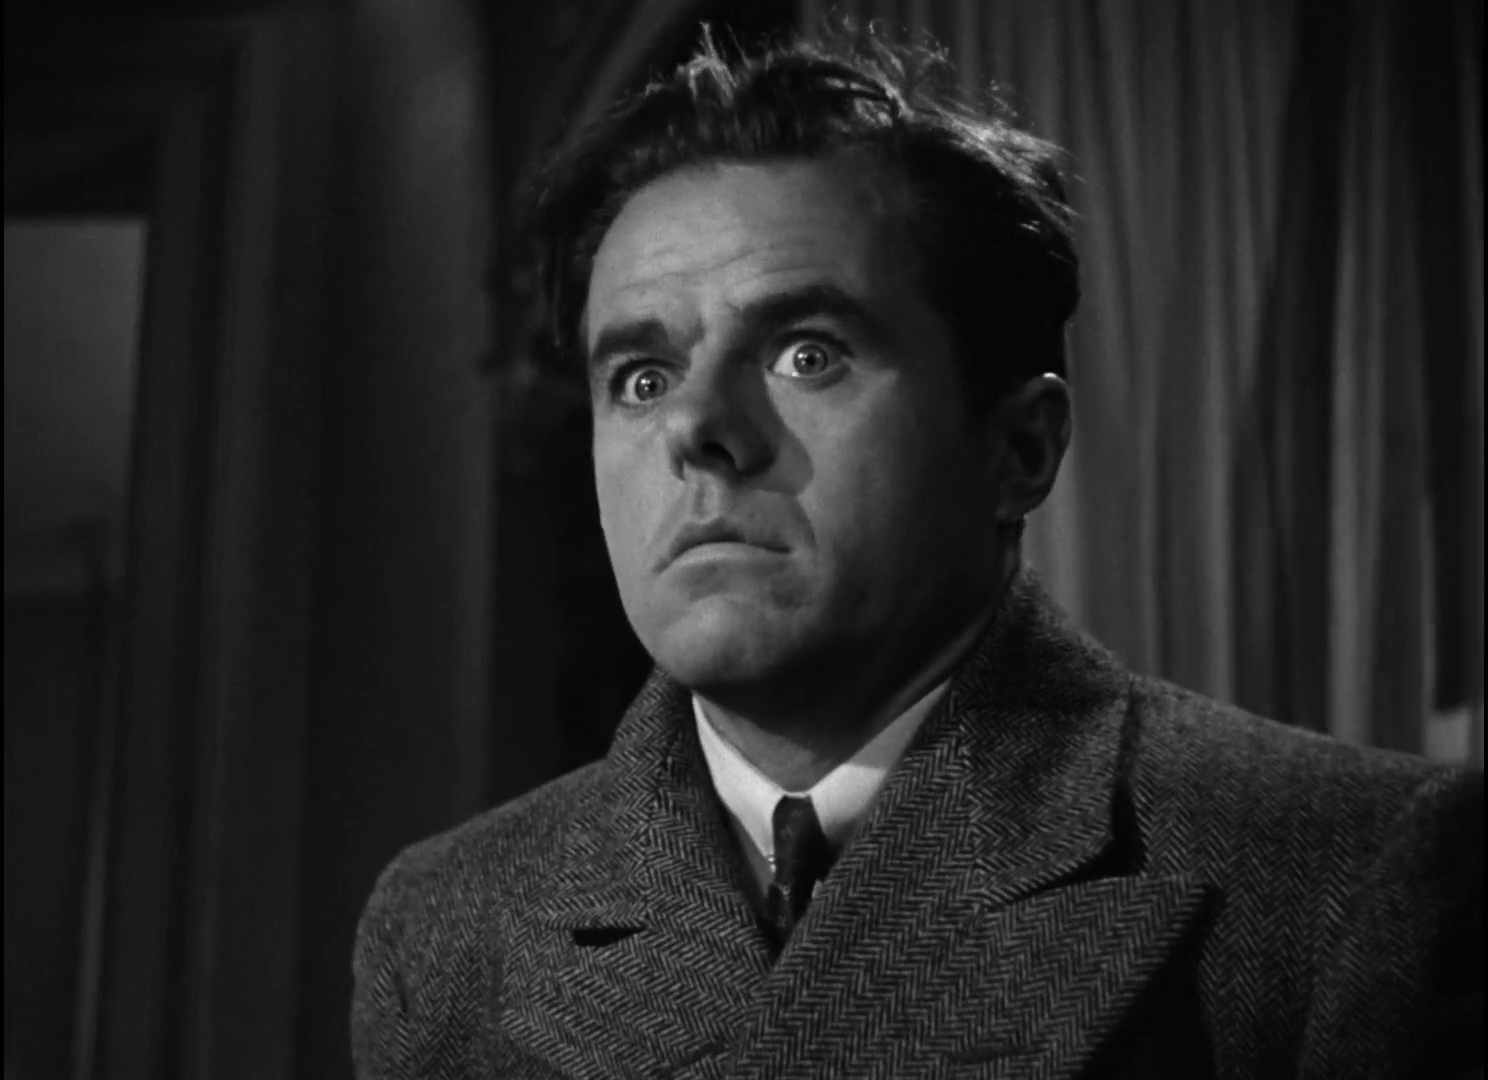 Elisha Cook Jr dans The maltese falcon  (Le faucon maltais, 1941) de John Huston